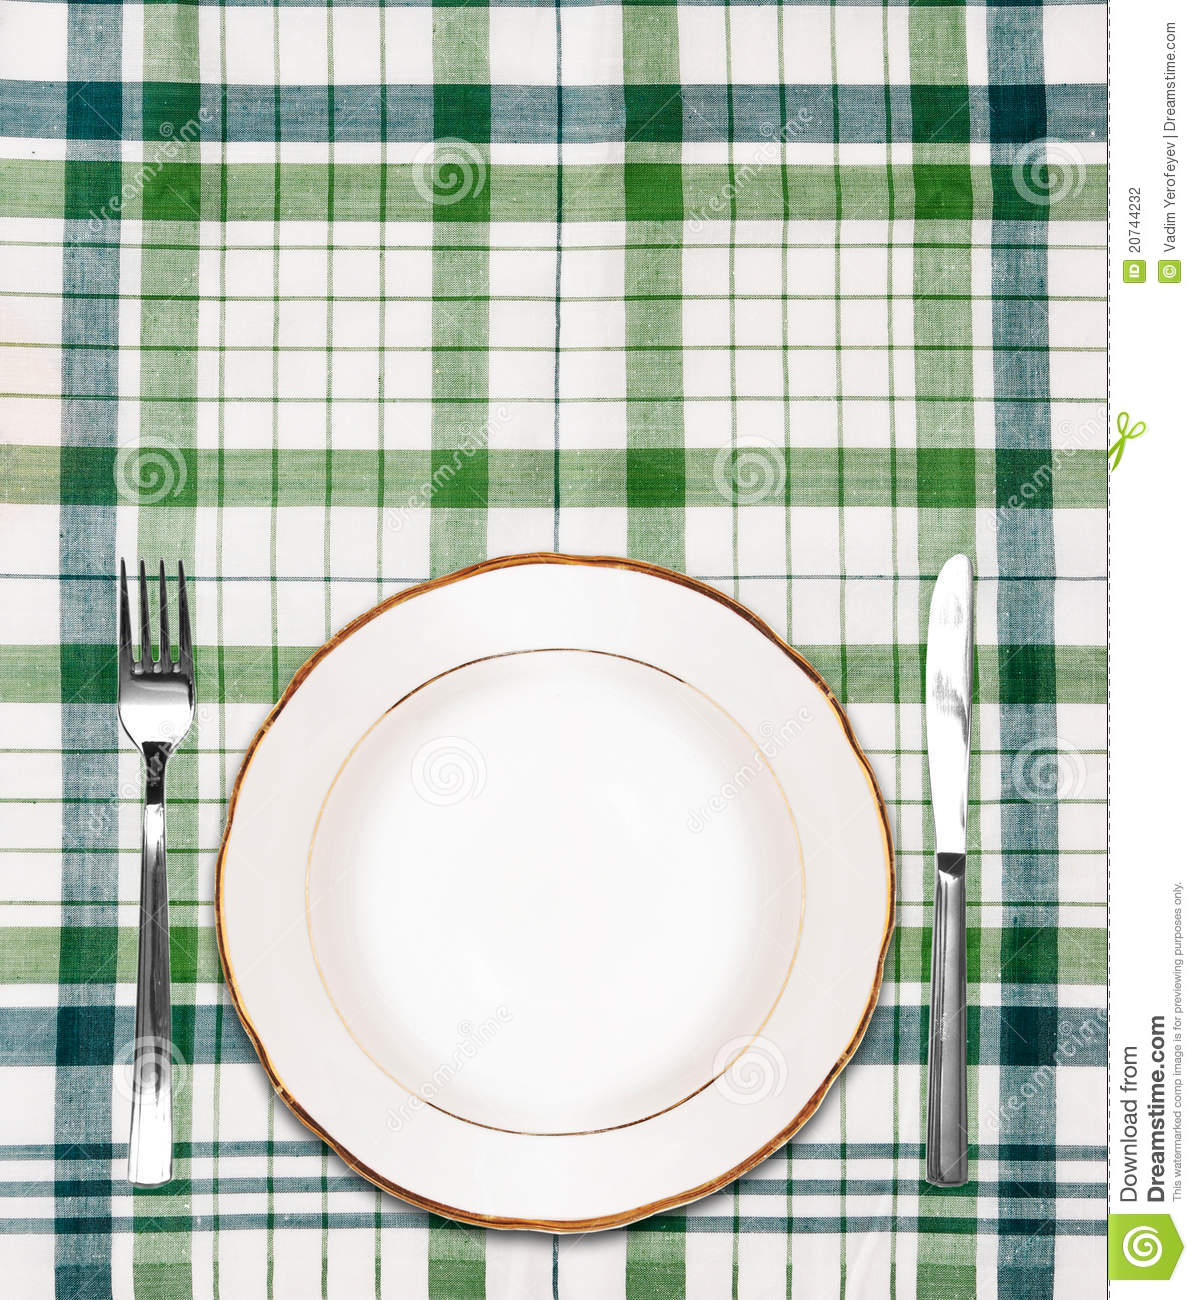 White Plate On Green Checkered Tablecloth Stock Photo